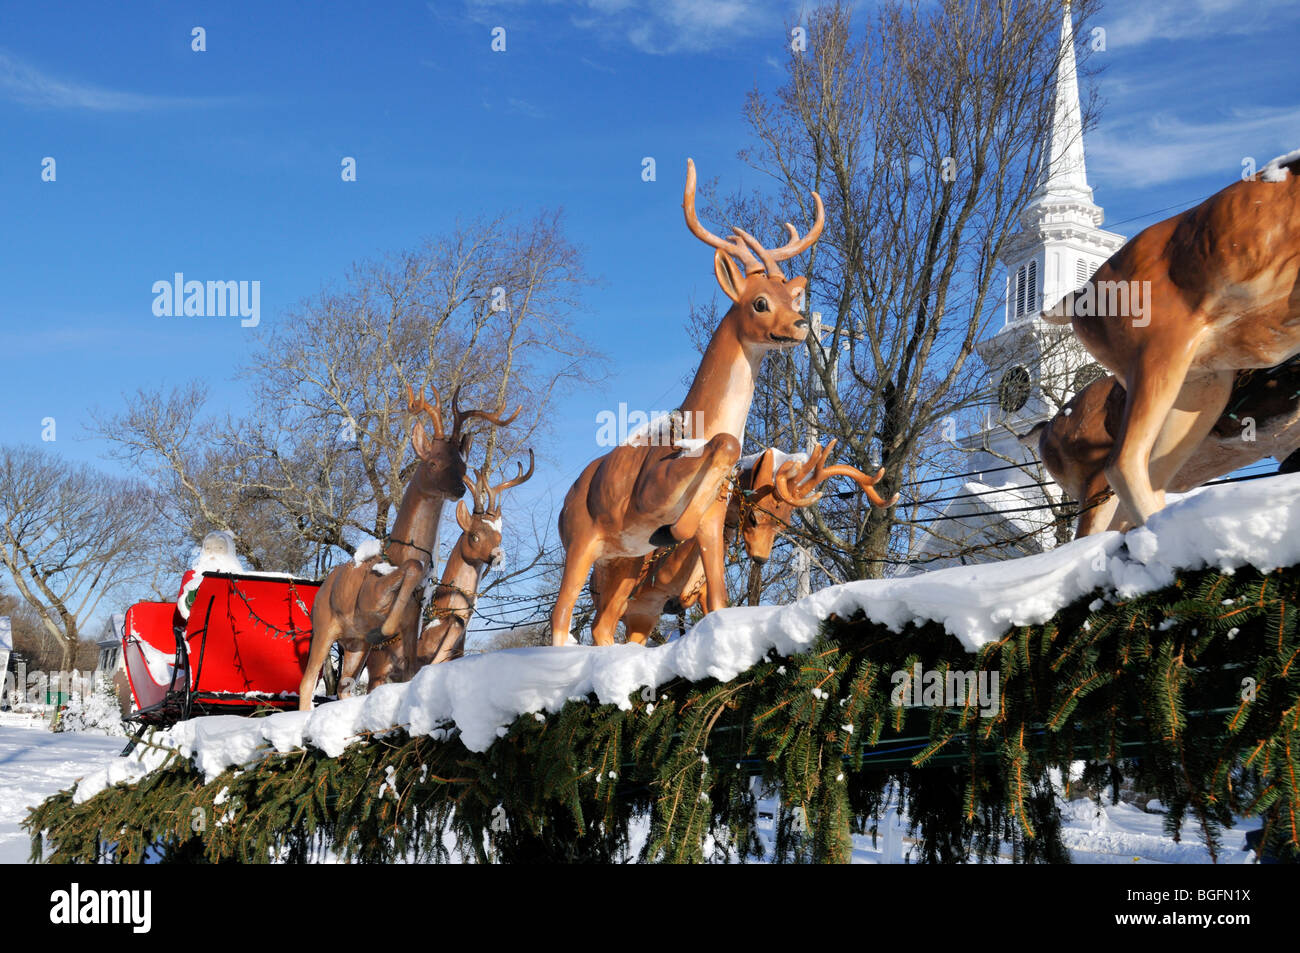 Santa S Sleigh And Reindeer At Christmas With Snow And Church Steeple Stock Photo Alamy